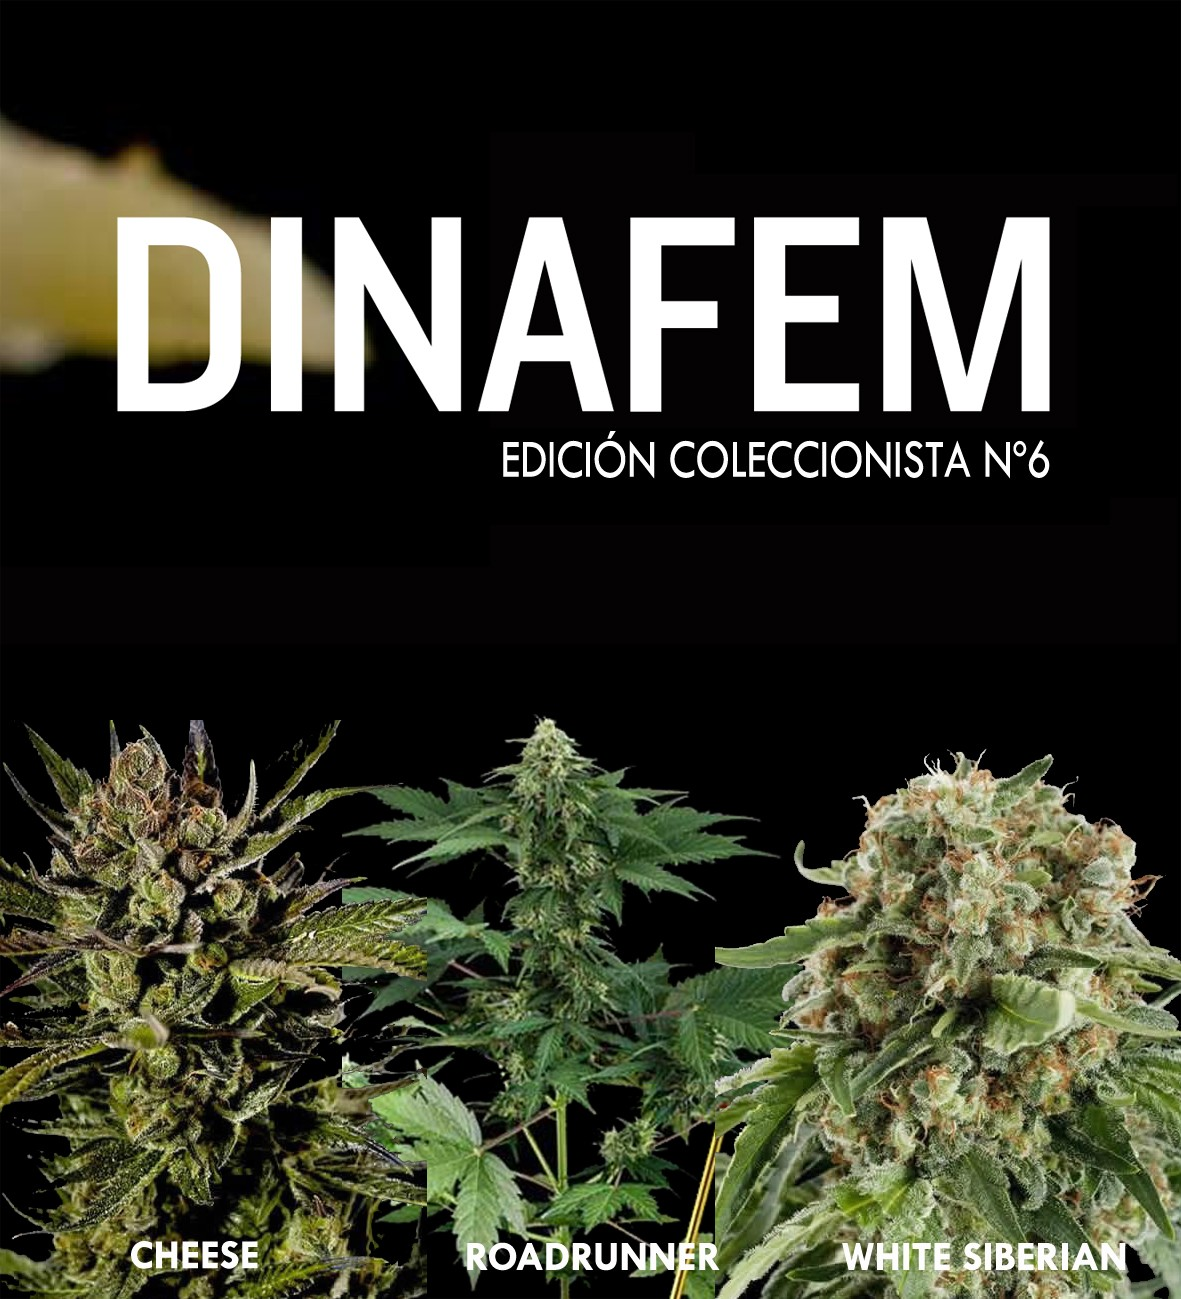 Dinafem collector # 6 6 graines